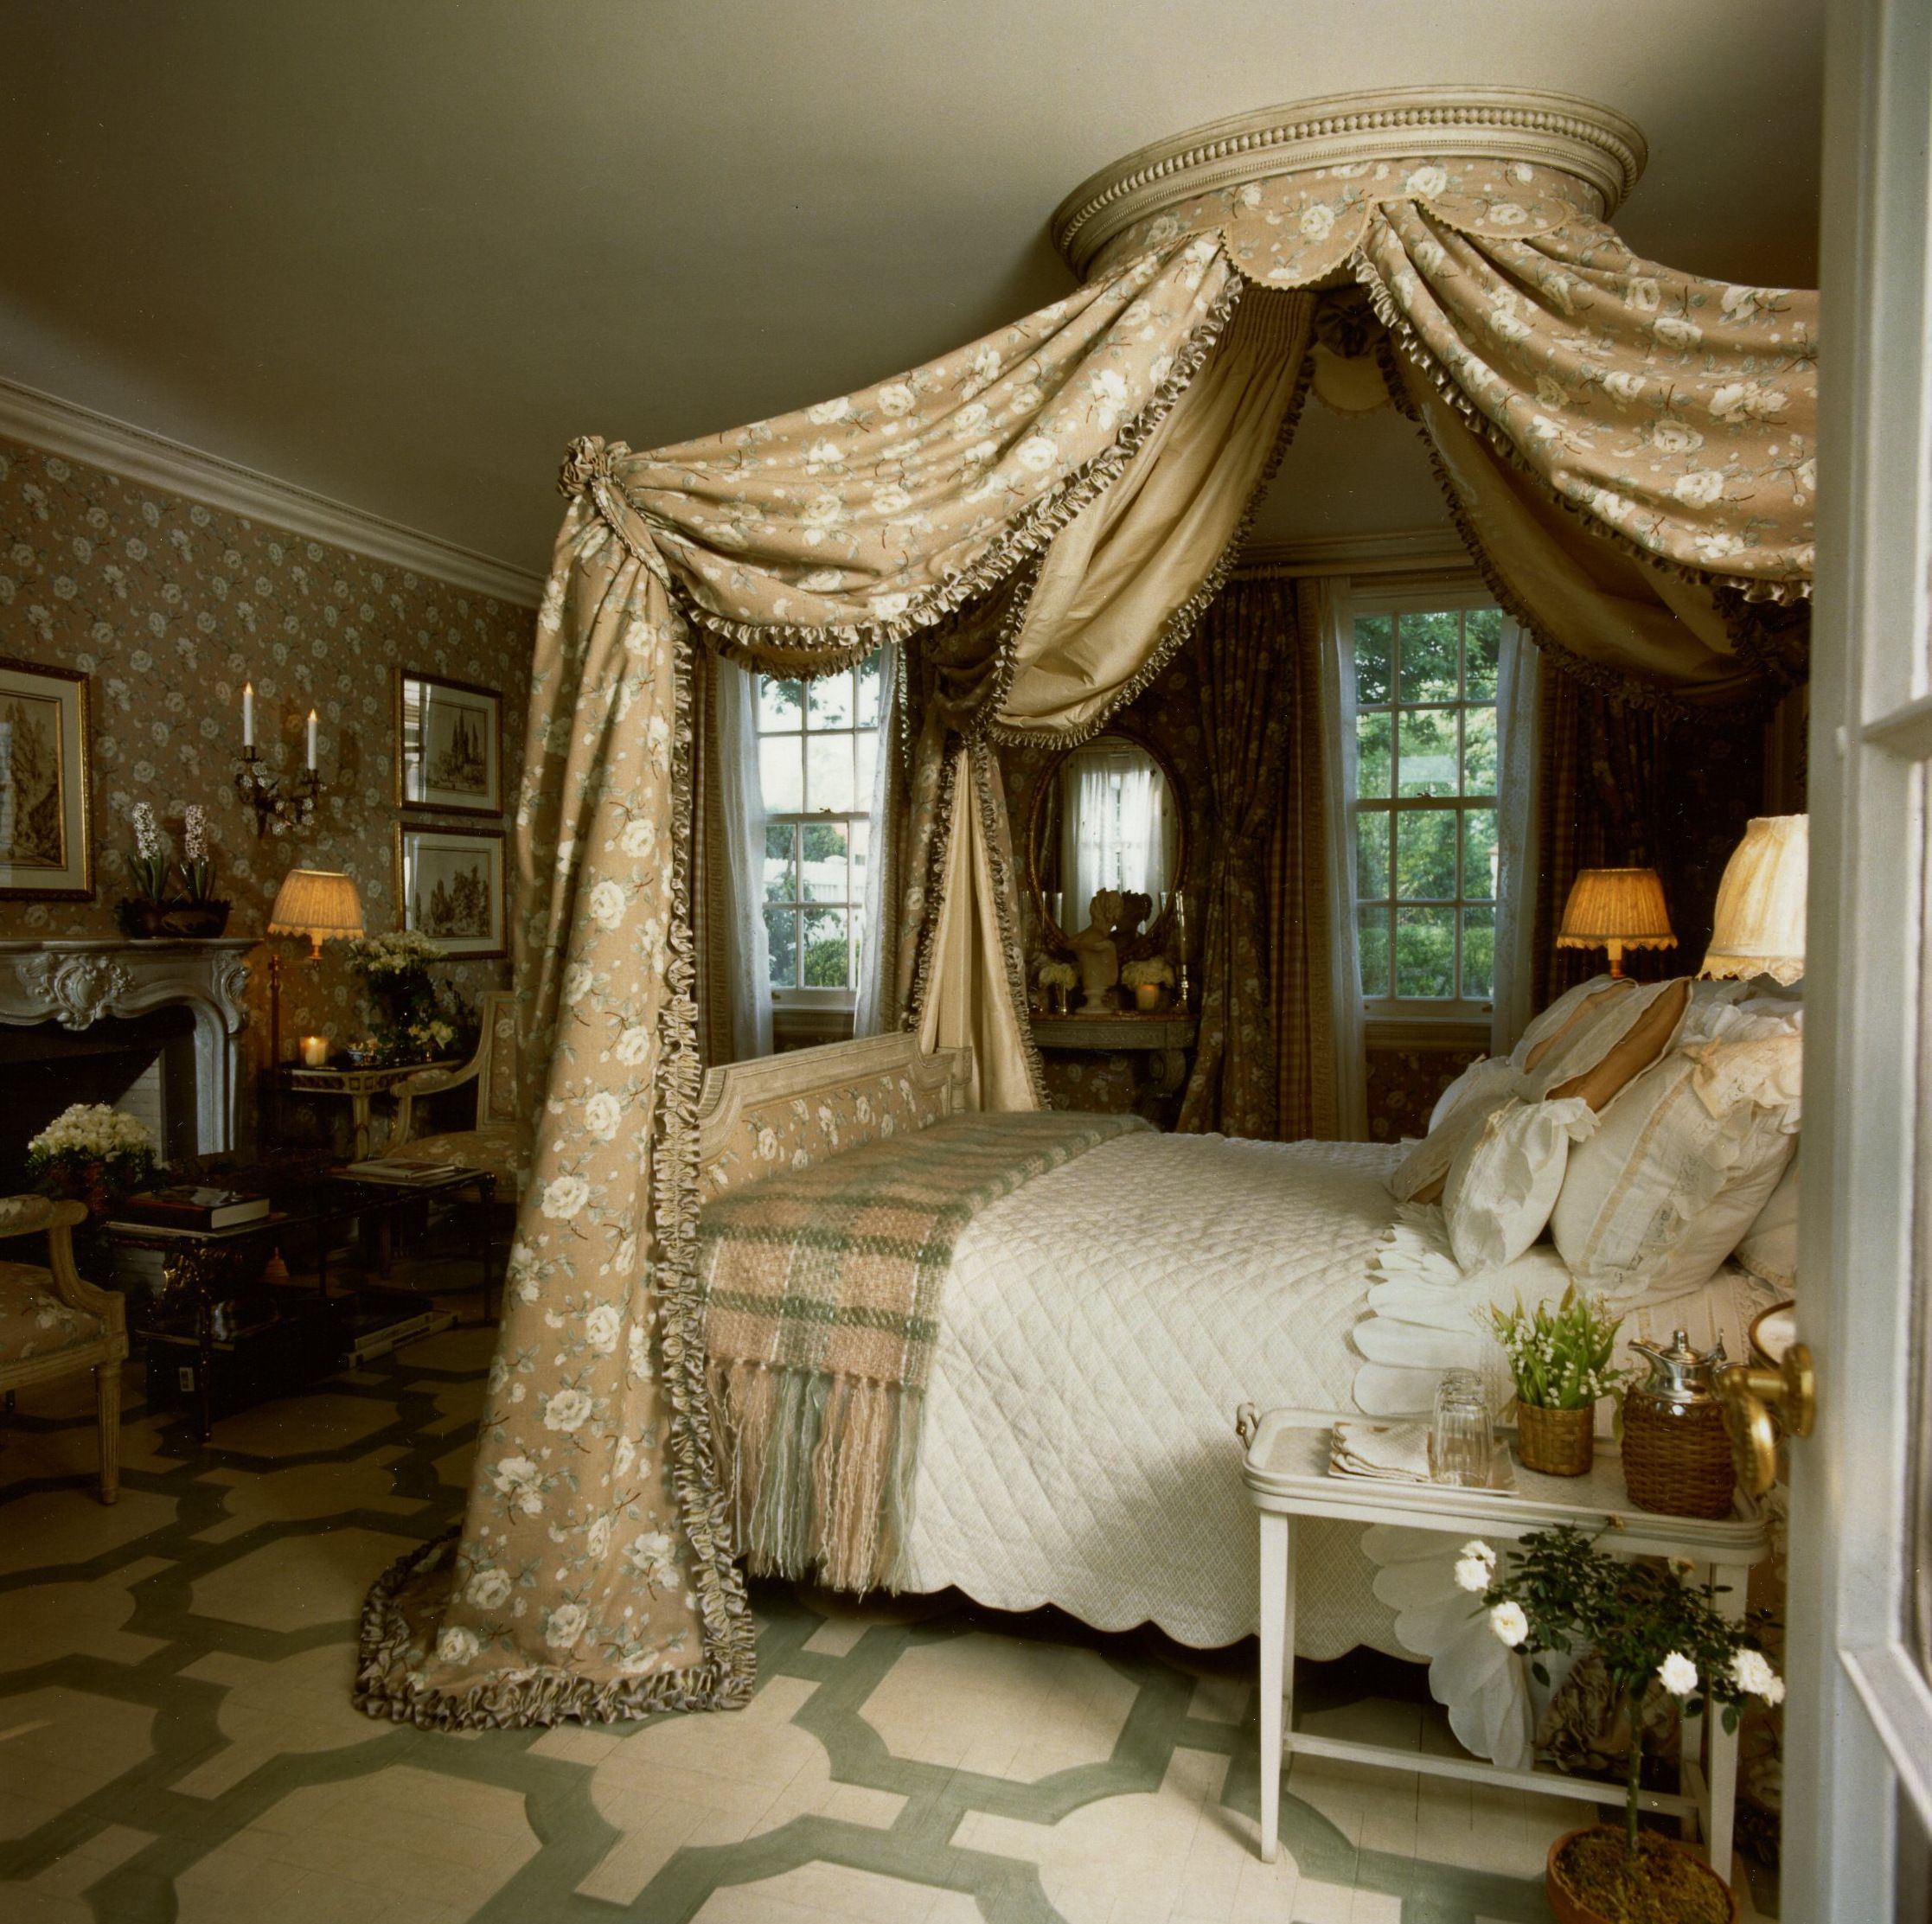 Bedroom with window over bed  love the tiester over the bed very elegant the wallpaper and